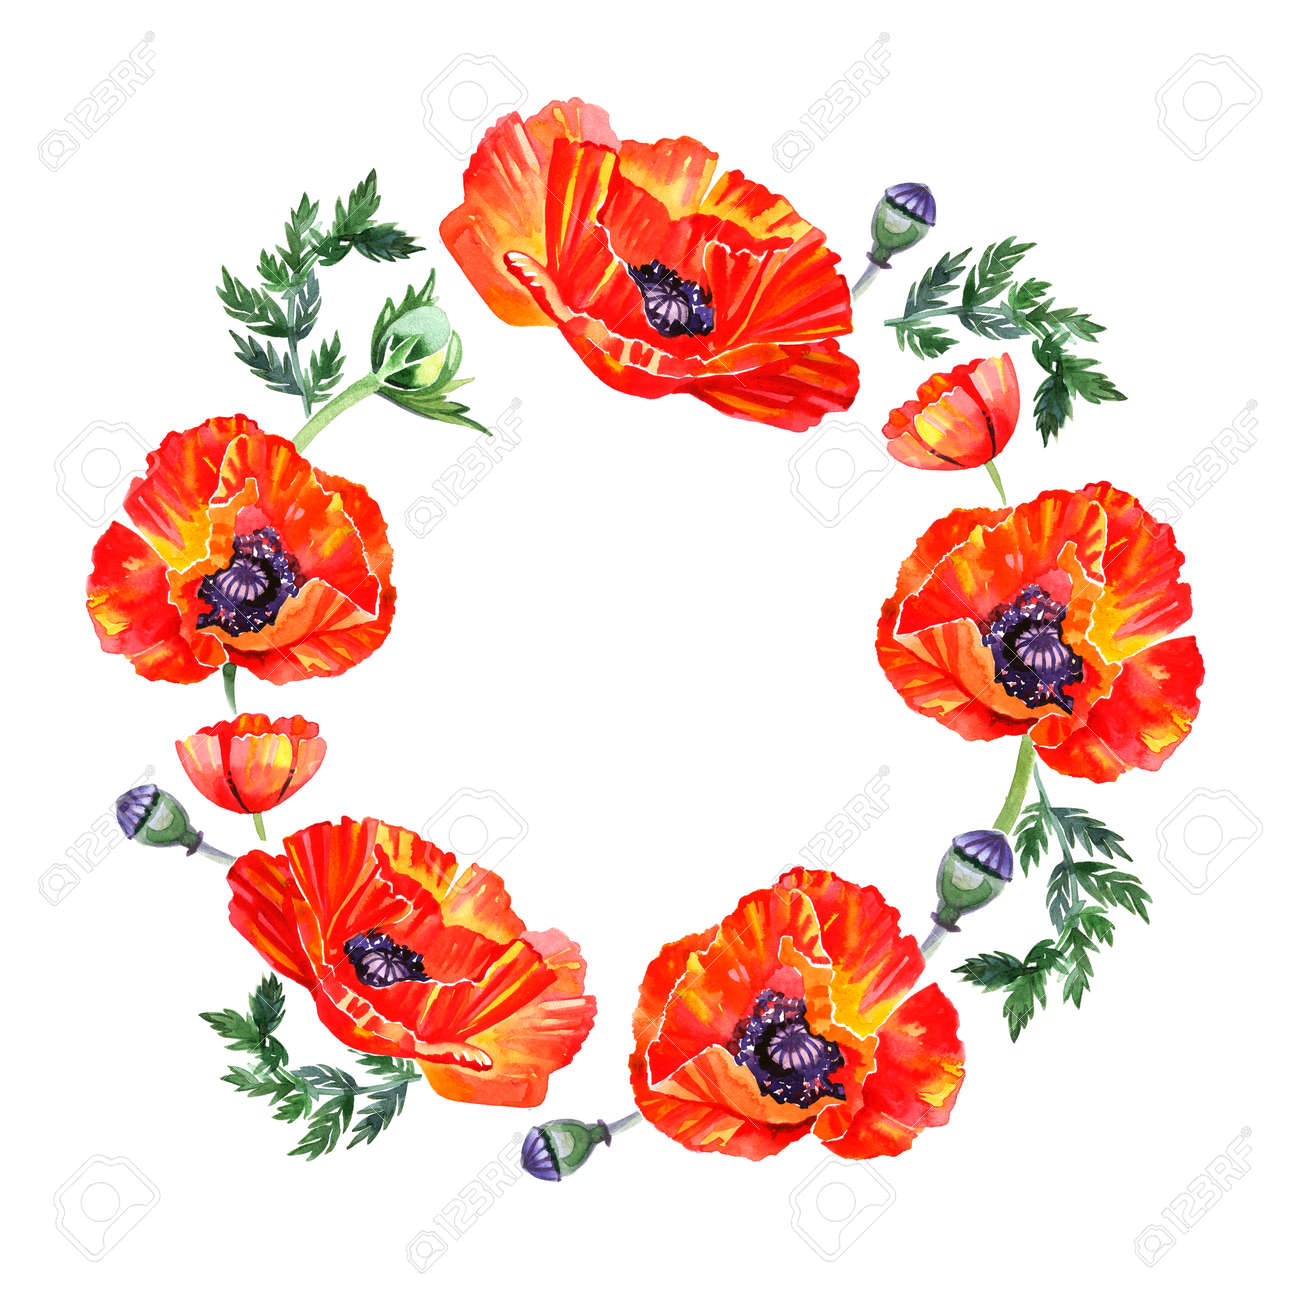 Wildflower Poppy Flower Wreath In Watercolor Style Isolated Stock